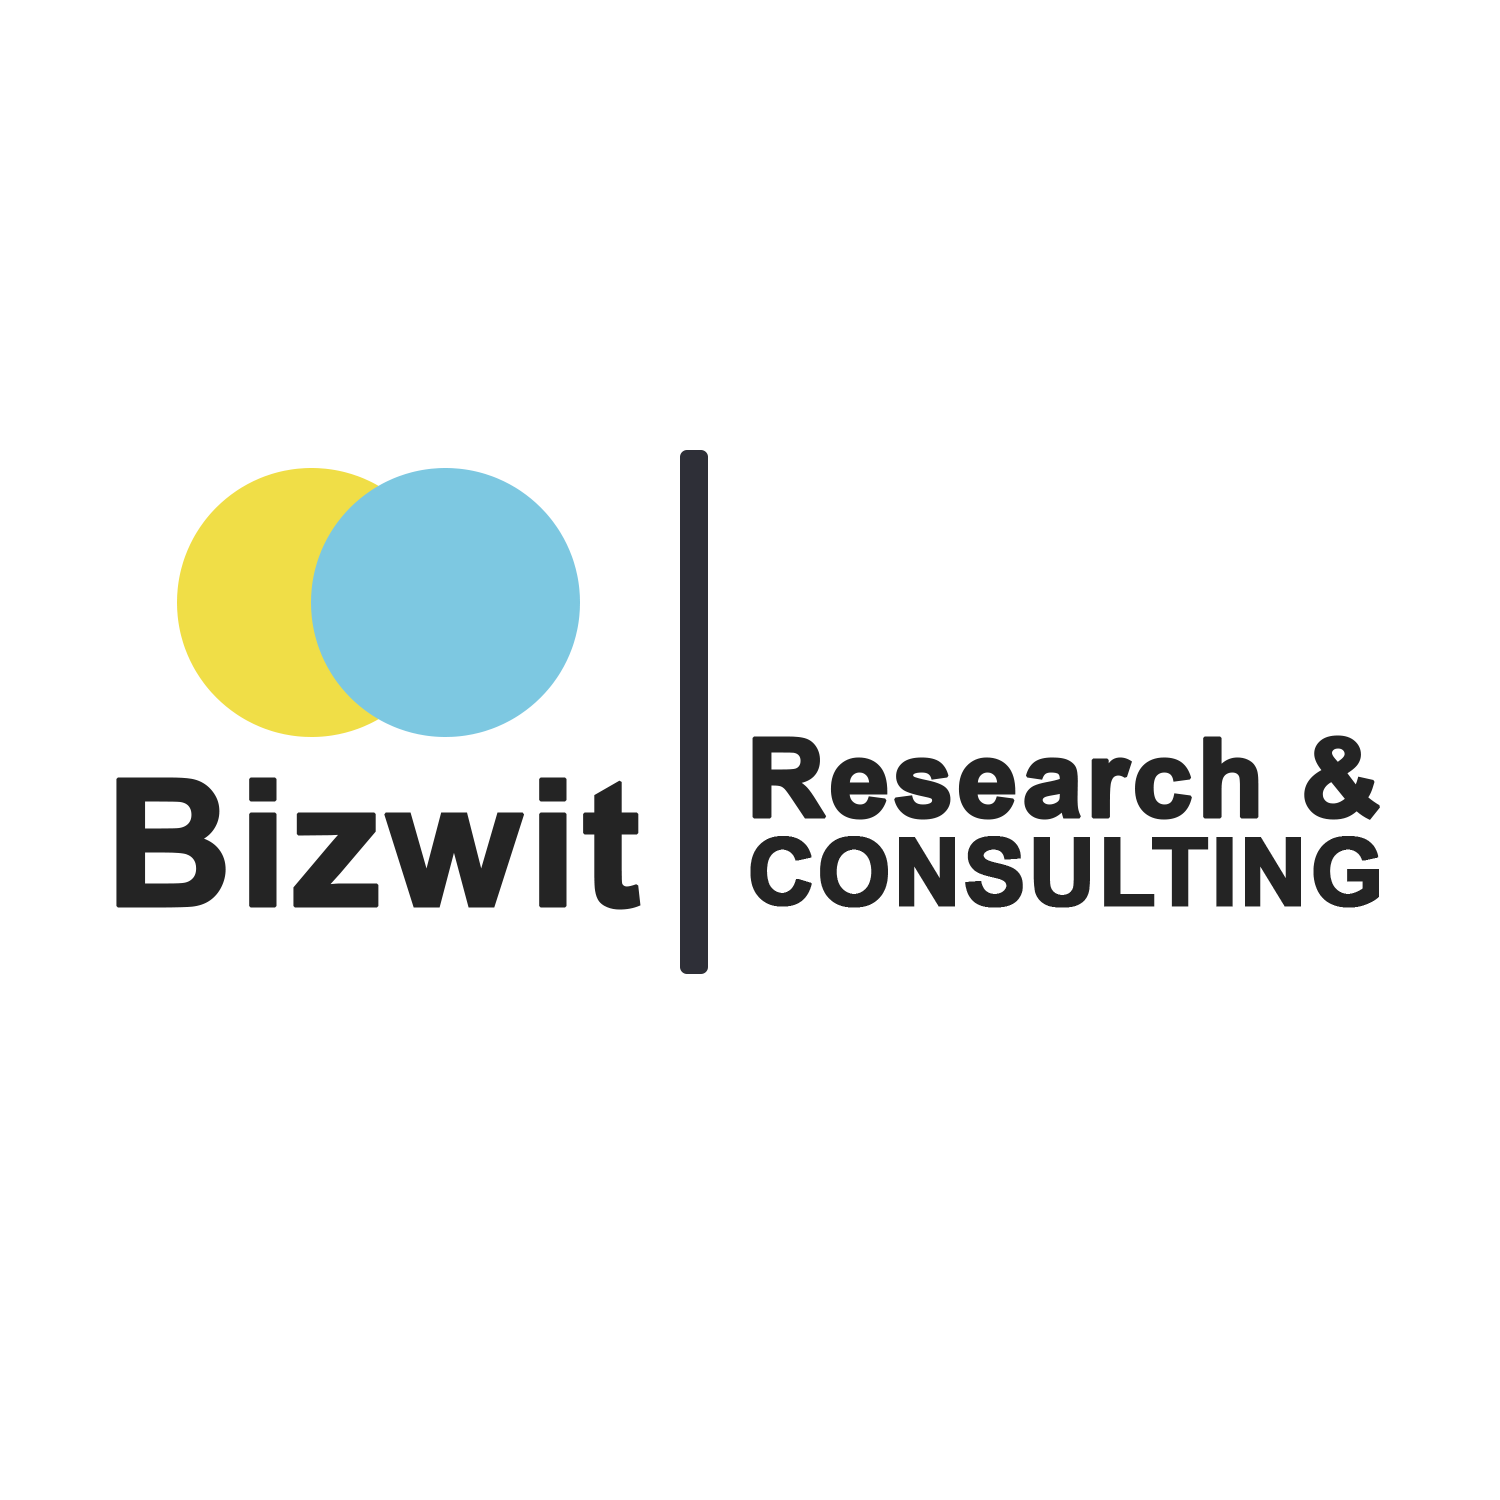 Bizwit Research & Consulting LLP Logo